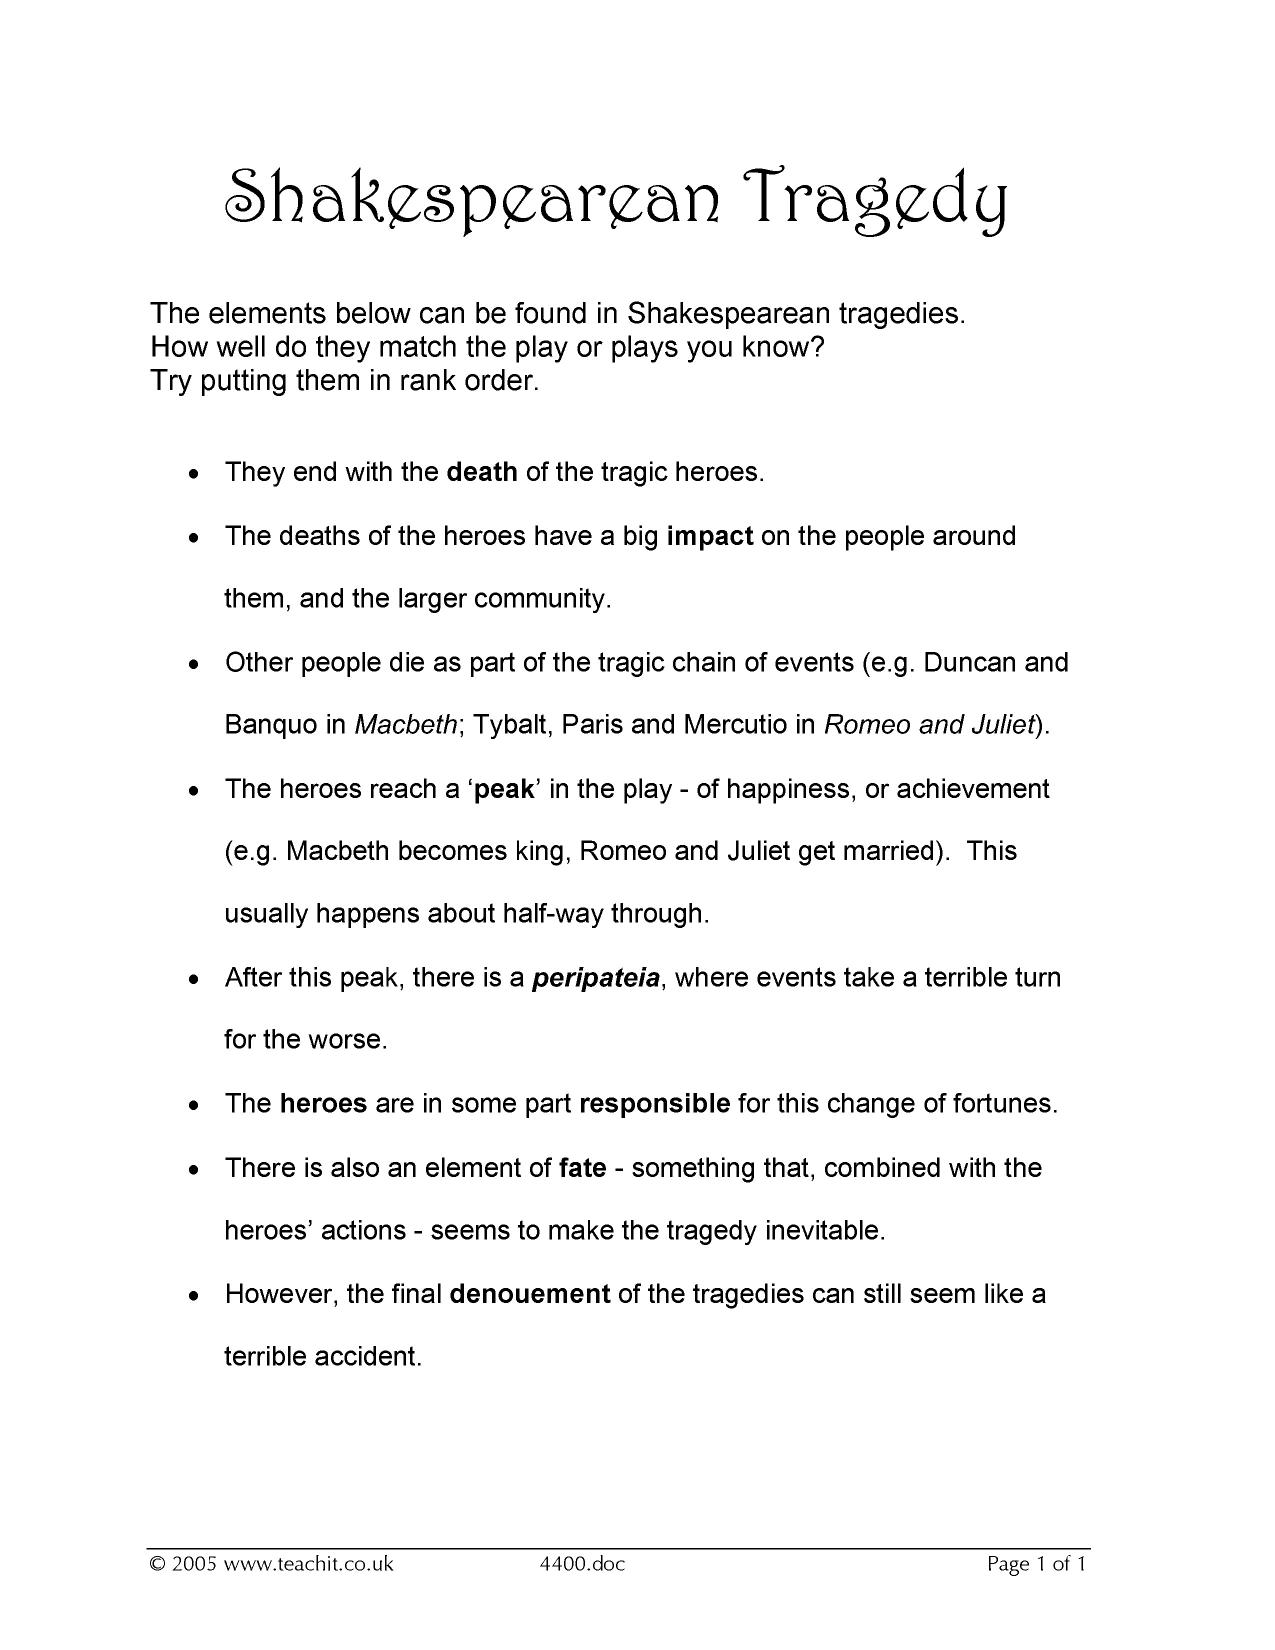 essay prompts for shakespeare Great selection of hamlet essay topics for high school and college students excellent resource of essay topics for academic writing assignments.